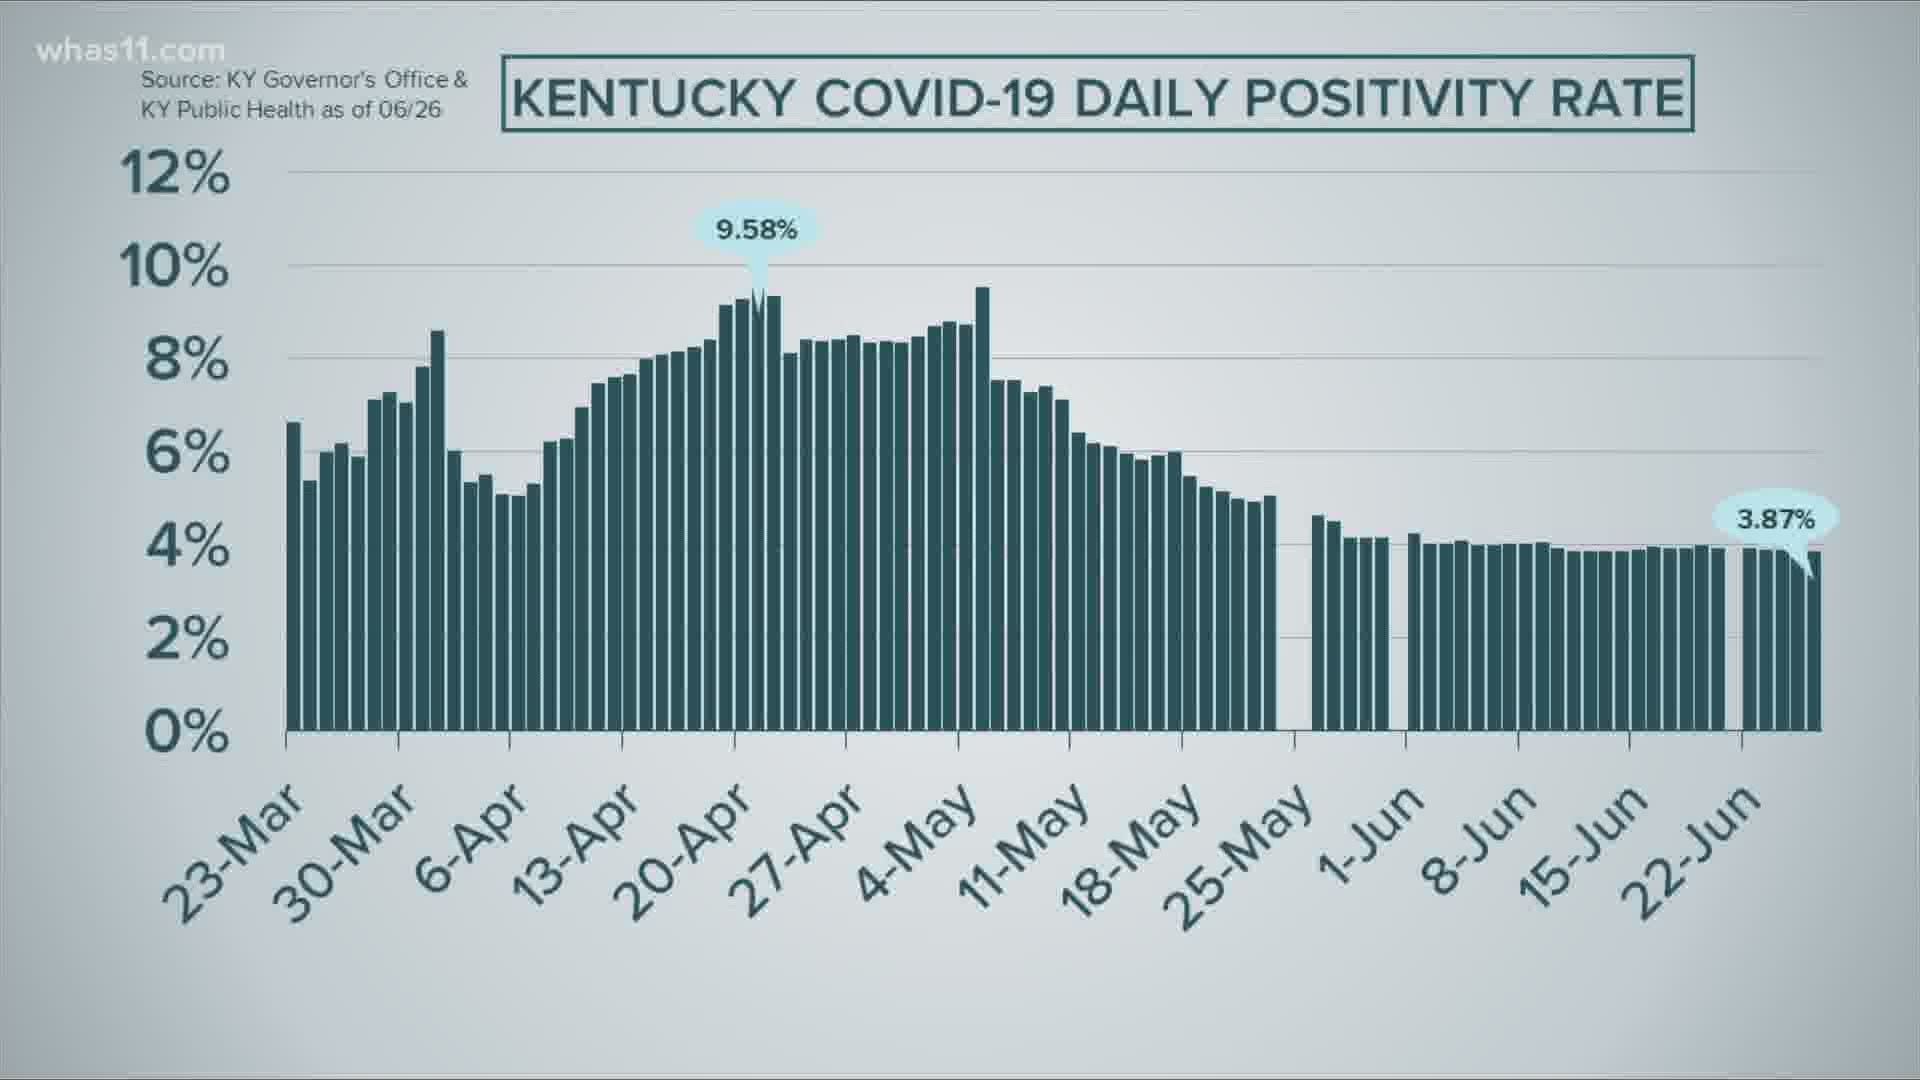 FOCUS COVID 20 positivity rates in Kentucky and Indiana